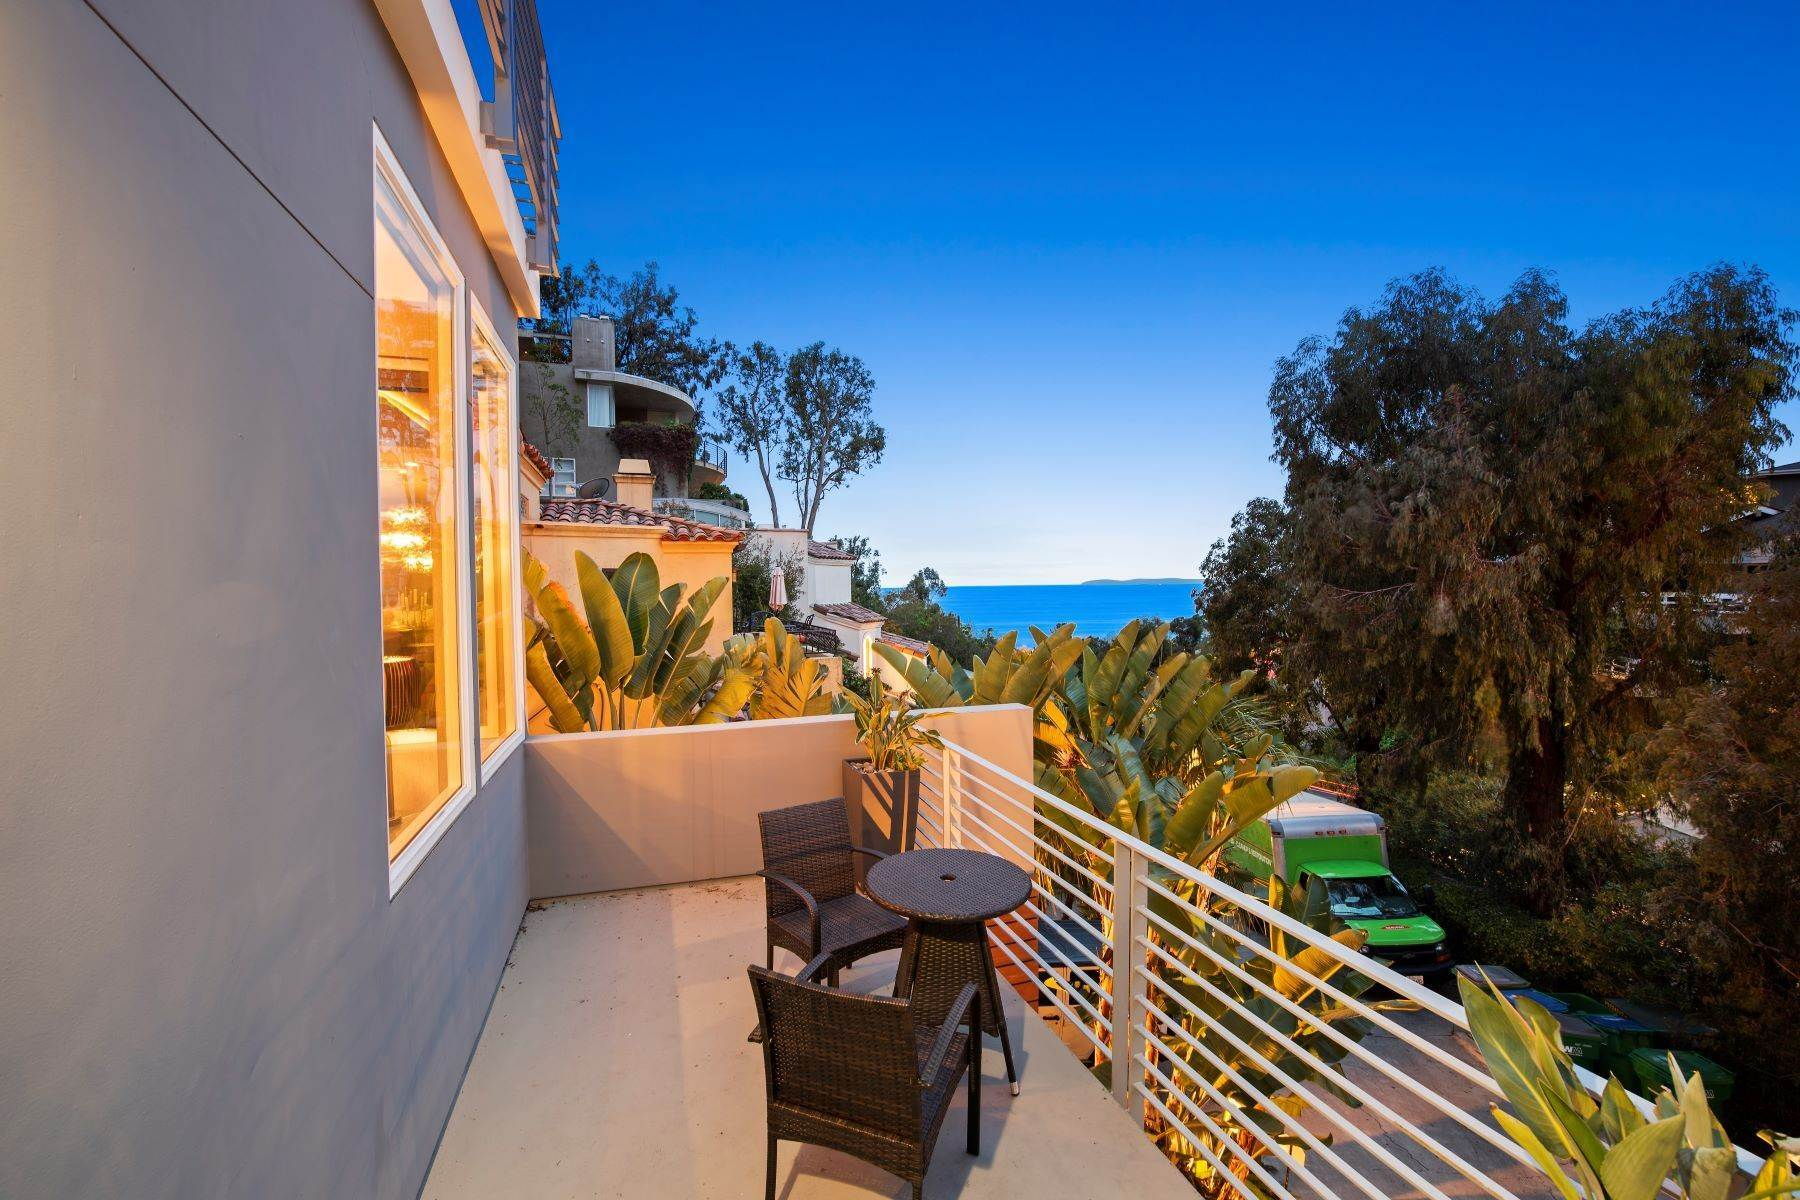 7. Single Family Homes for Sale at 845 Summit Drive, Laguna Beach, CA 92651 845 Summit Drive Laguna Beach, California 92651 United States